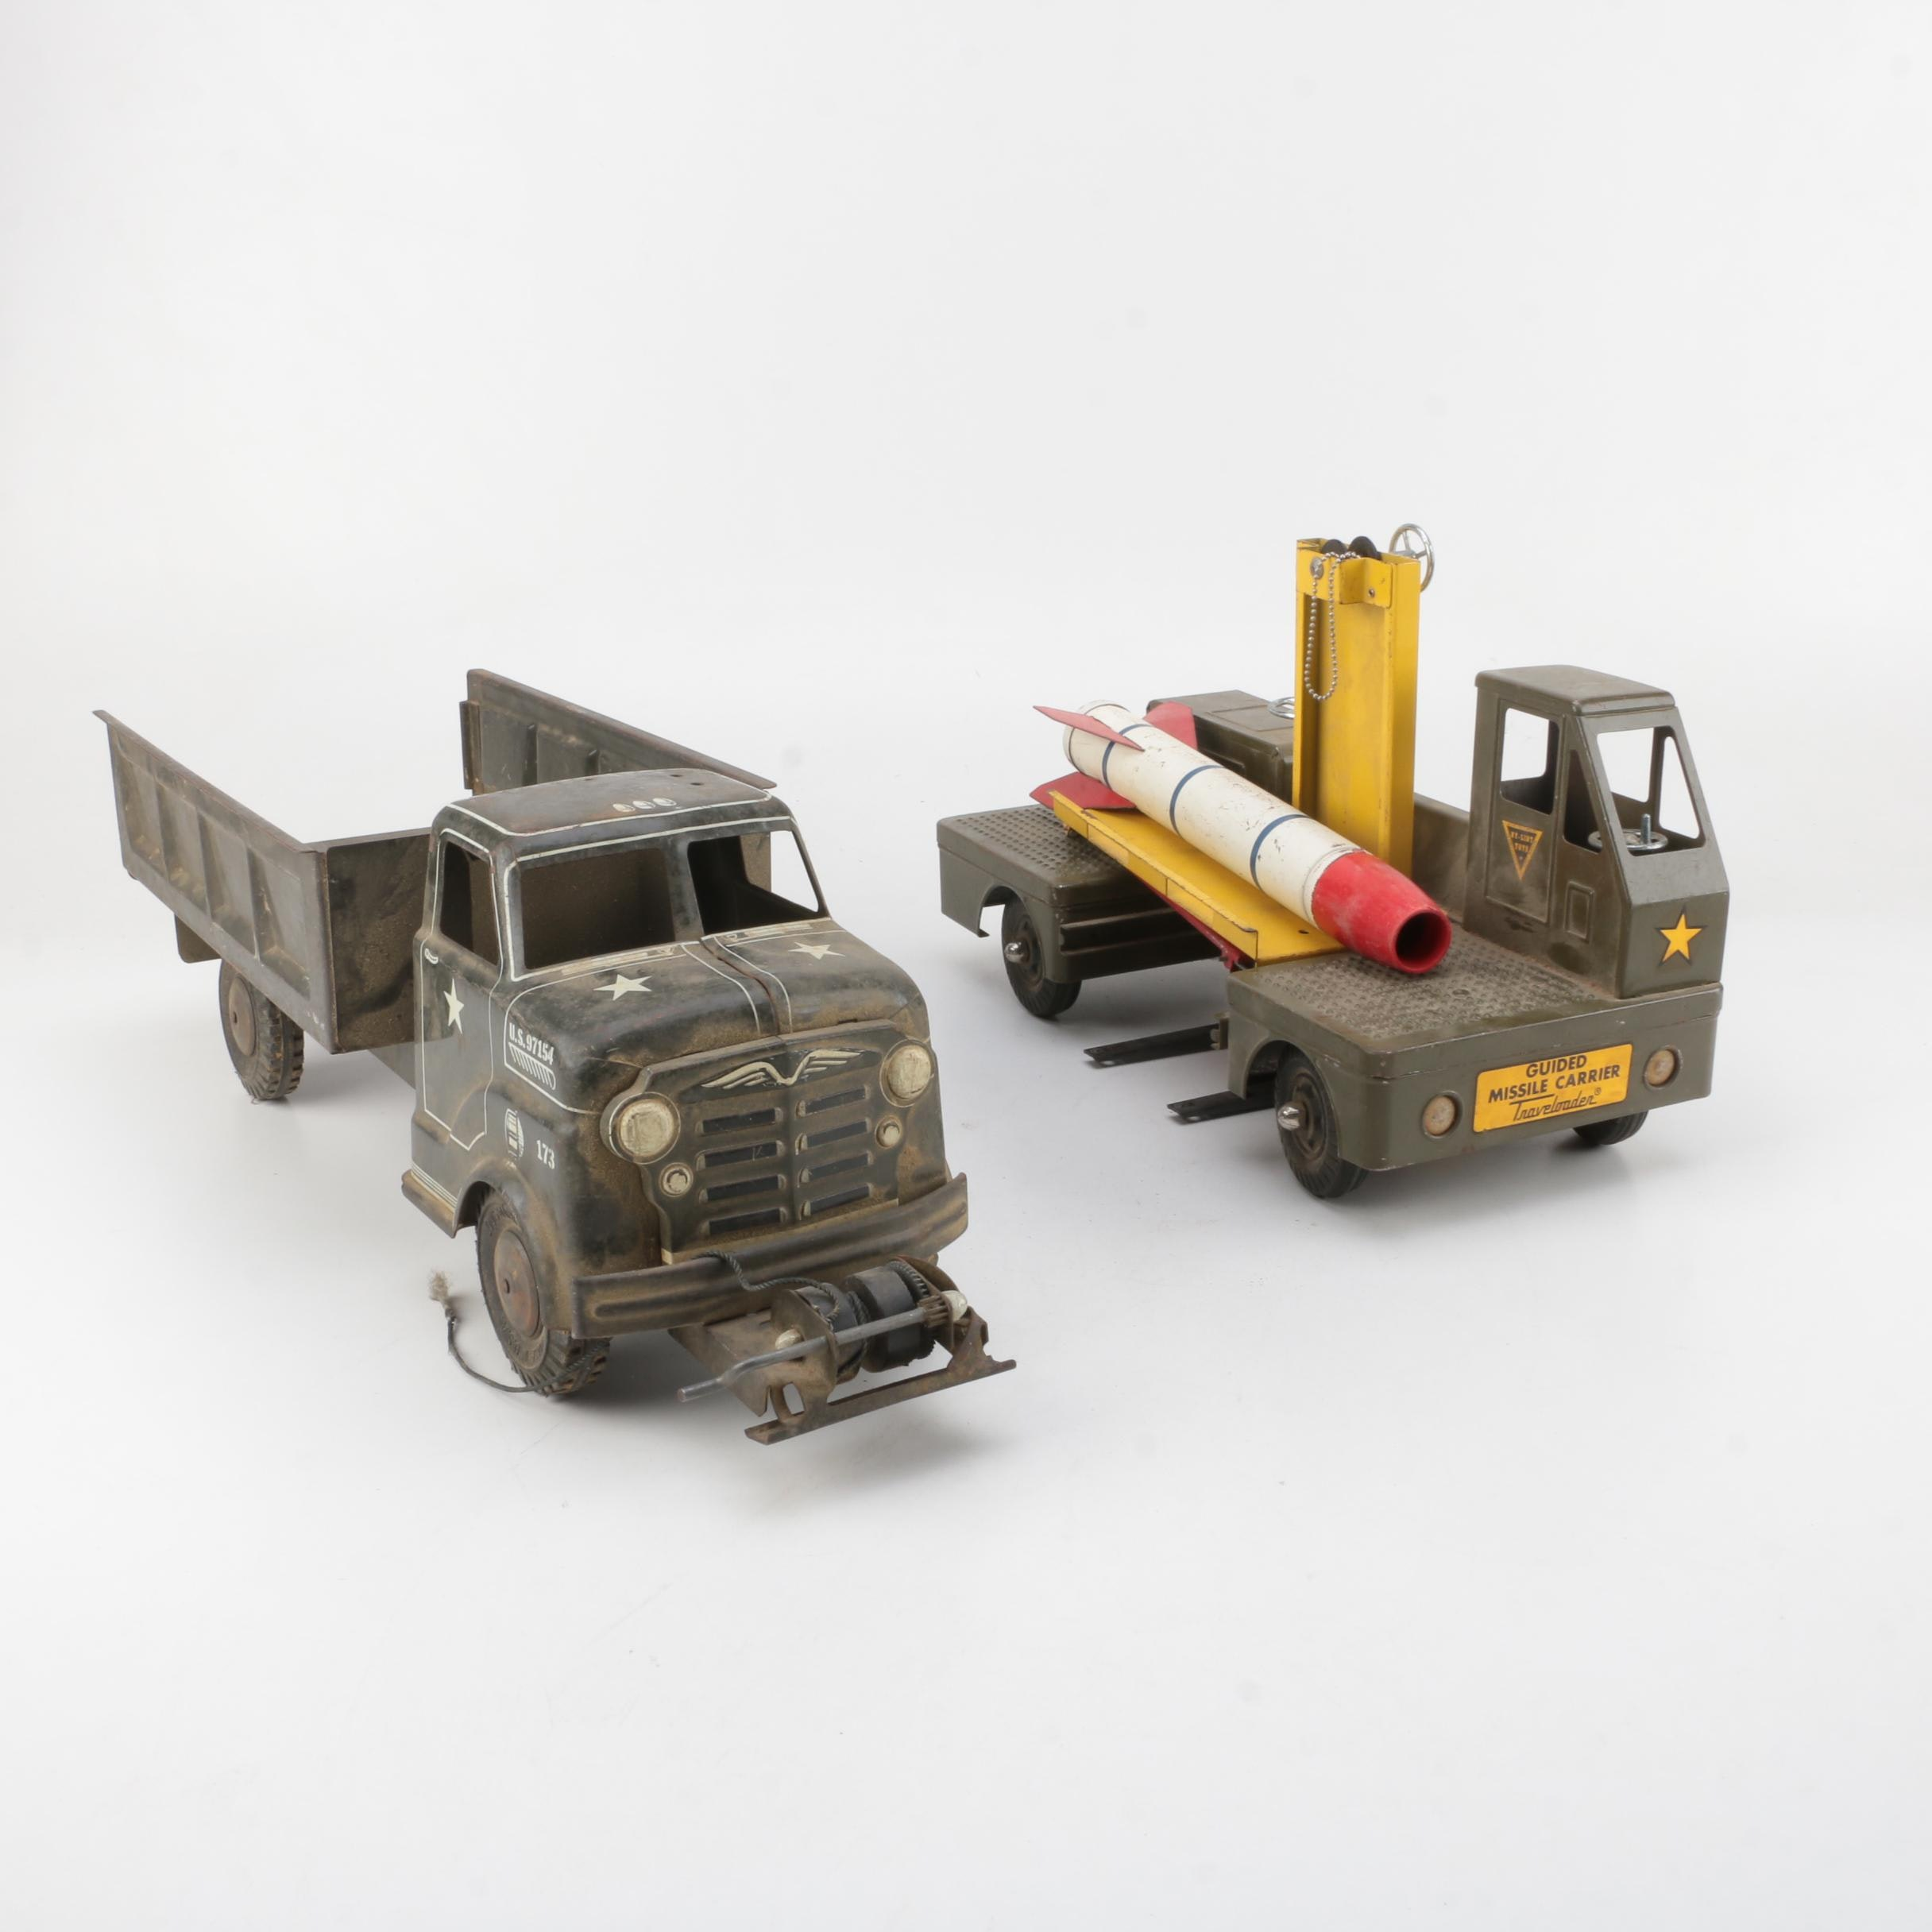 Vintage Pressed Steel Military Vehicles Including Marx and Nylint